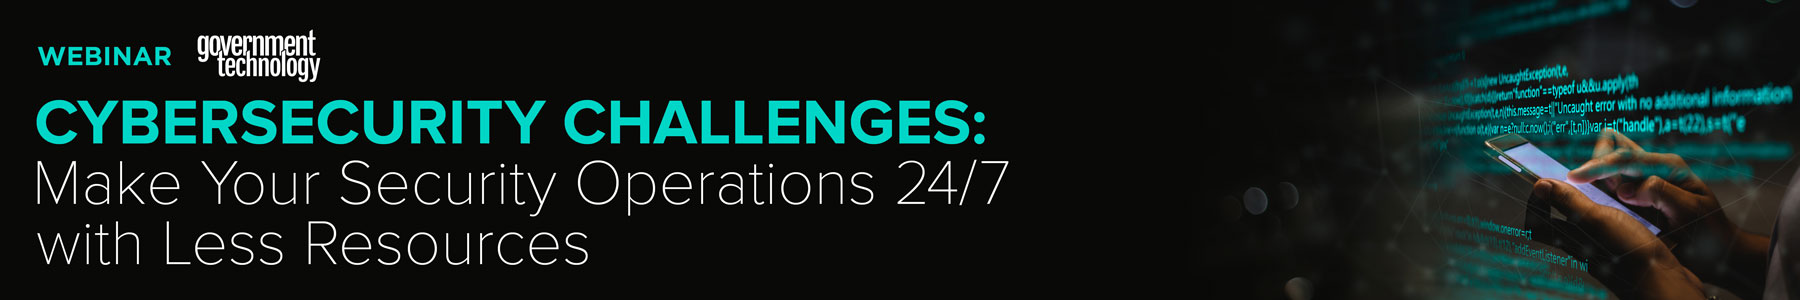 Cybersecurity Challenges: Make Your Security Operations 24/7 with Less Resources